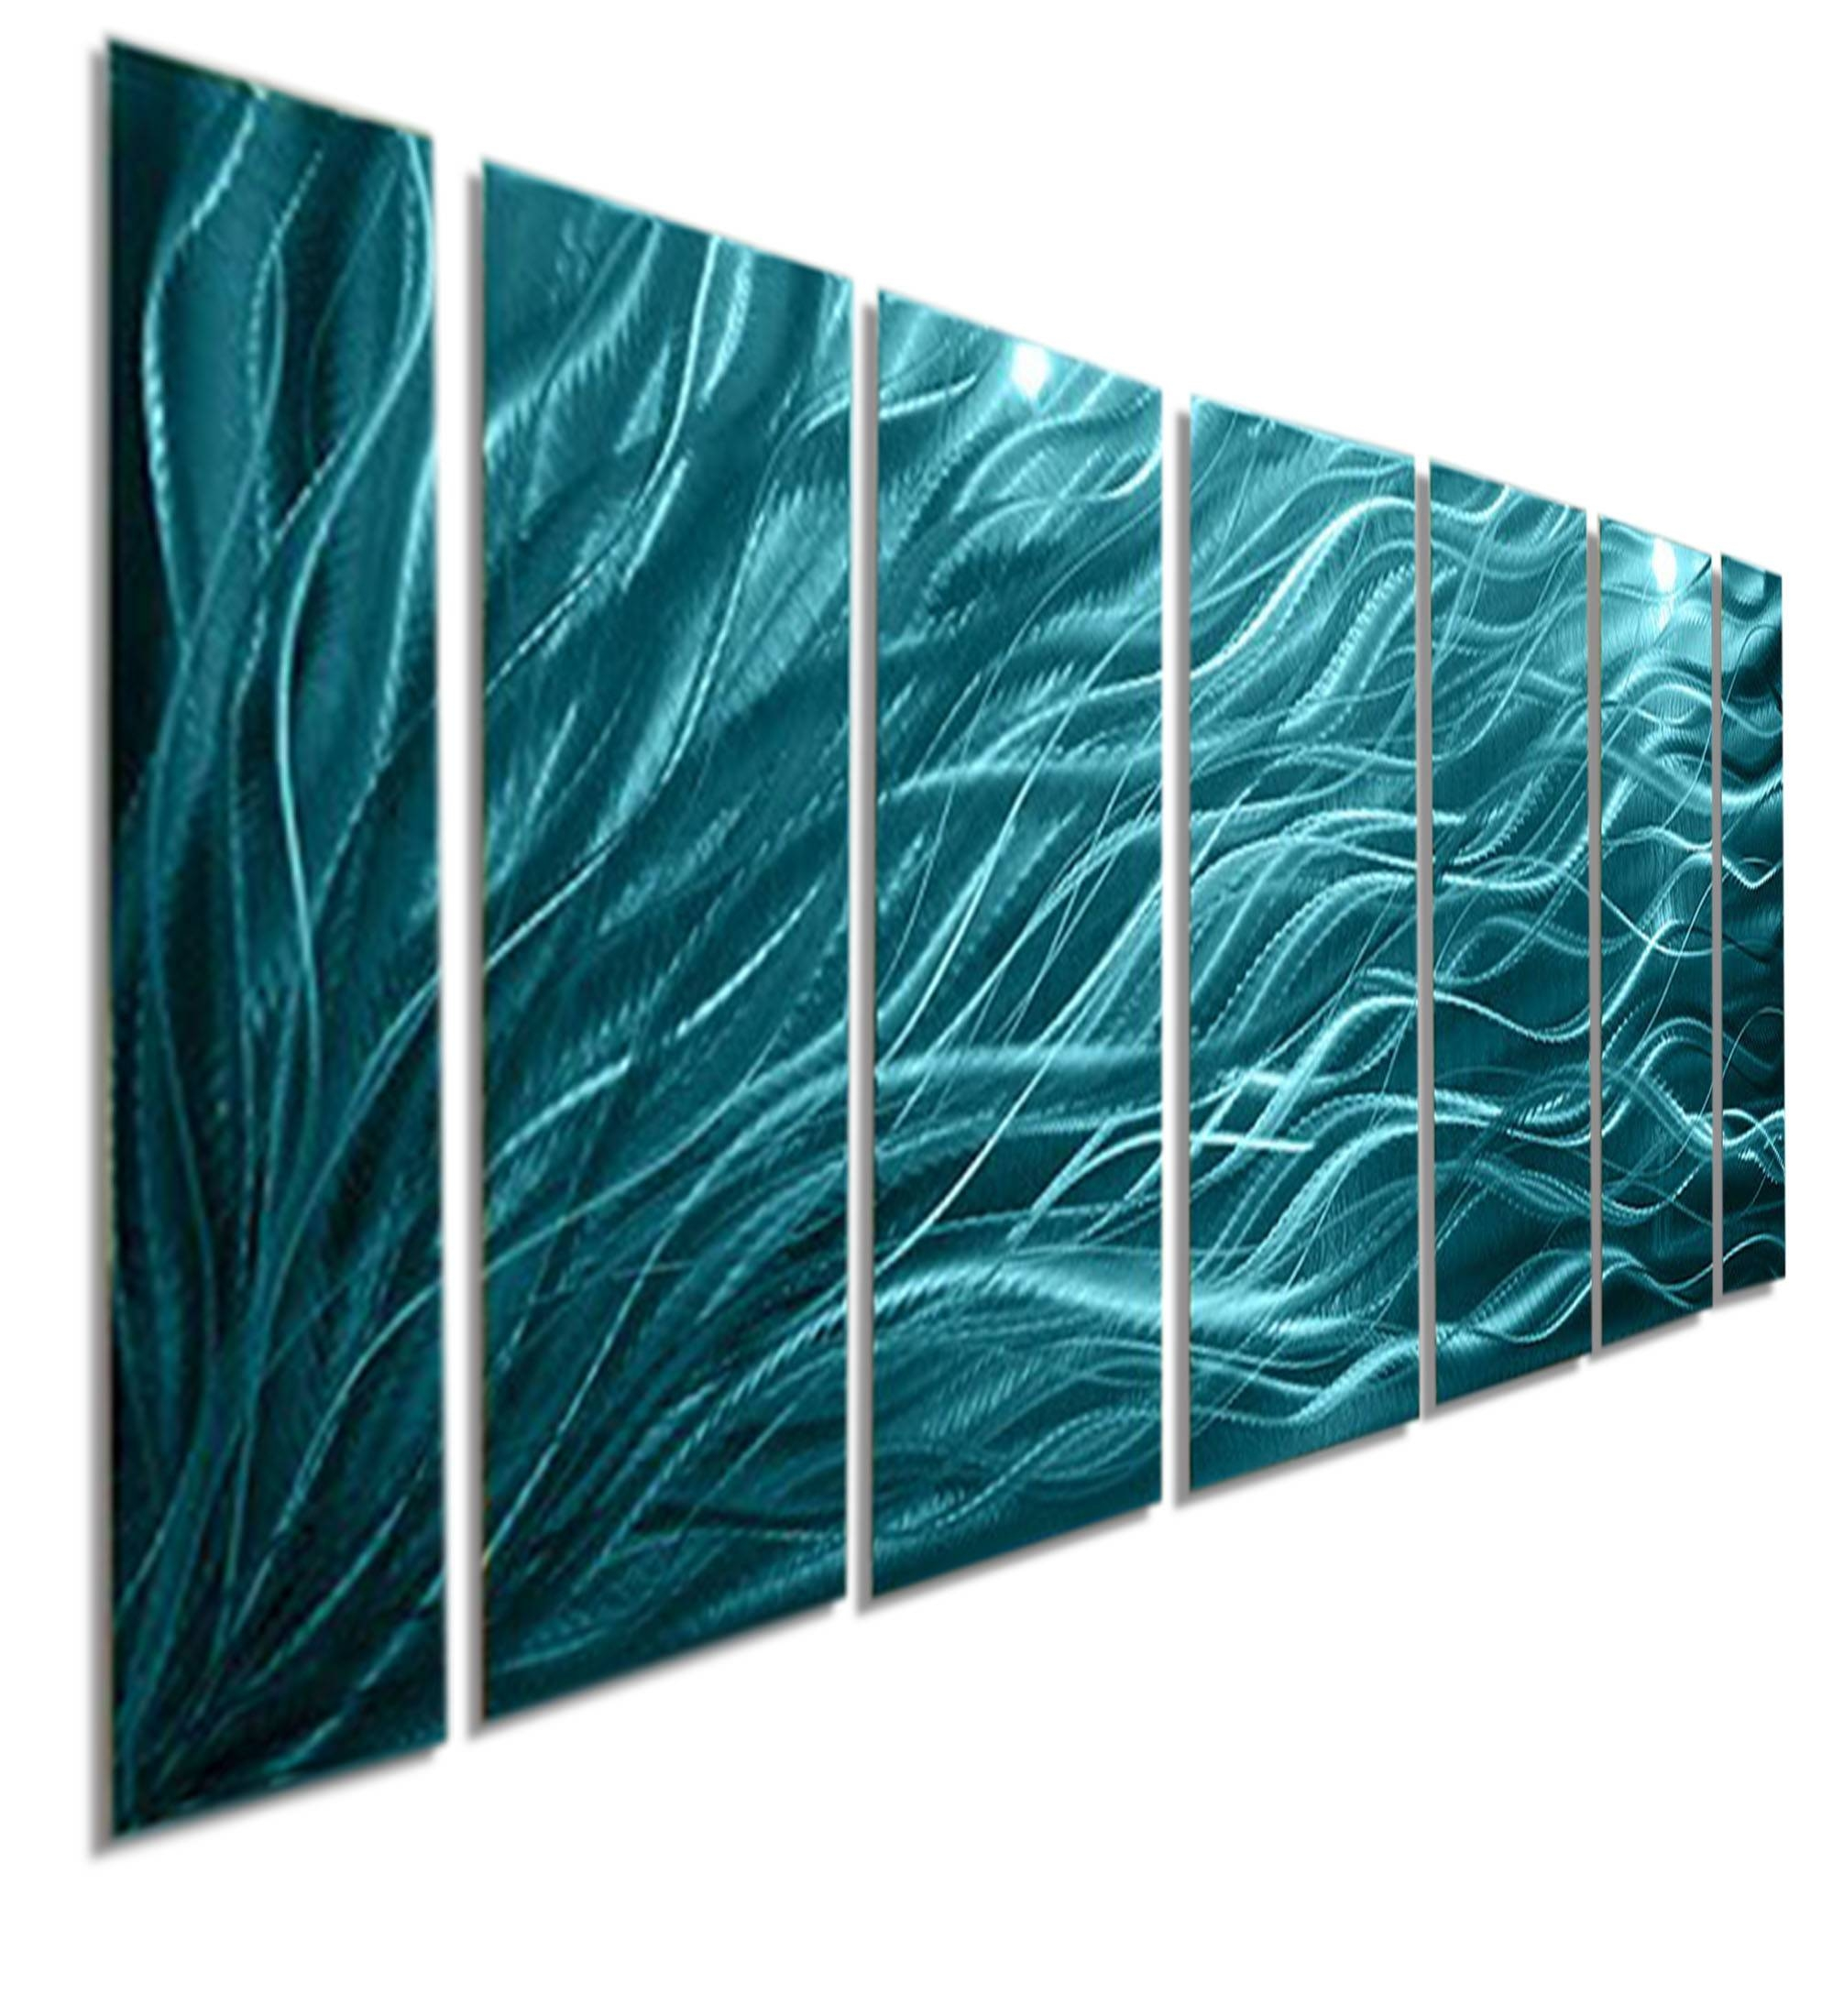 Rays Of Hope Aqua – Large Modern Abstract Metal Wall Artjon With Regard To Newest Large Abstract Metal Wall Art (Gallery 14 of 20)